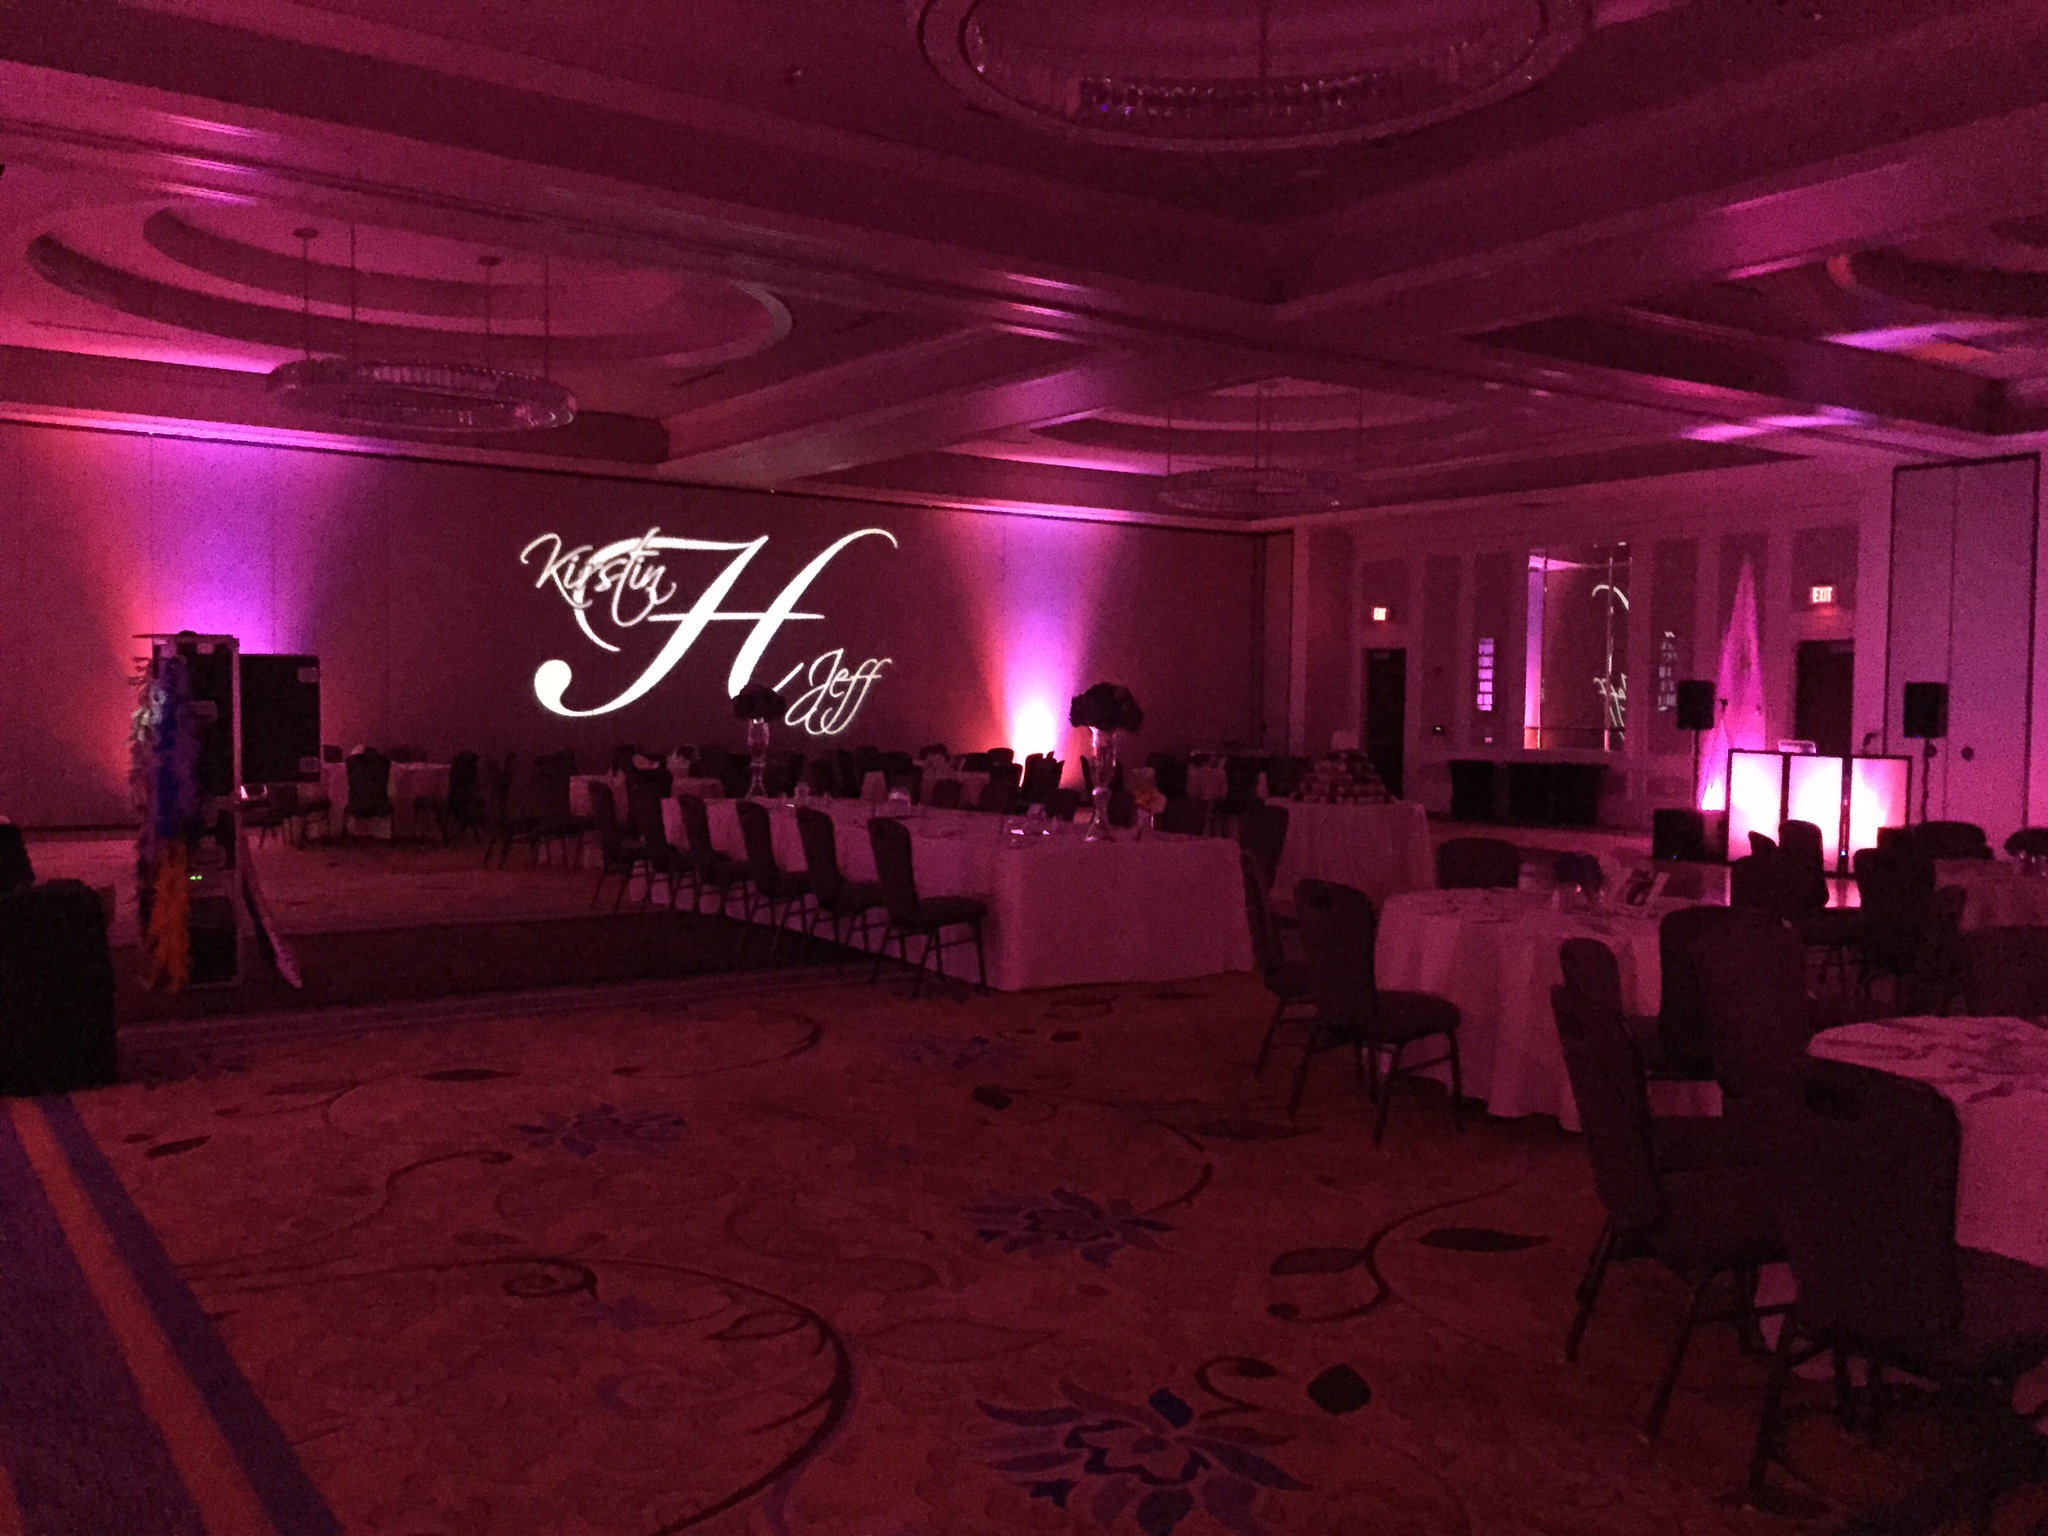 Kristin opted to take advantage of our custom LED uplighting to transform the reception space.